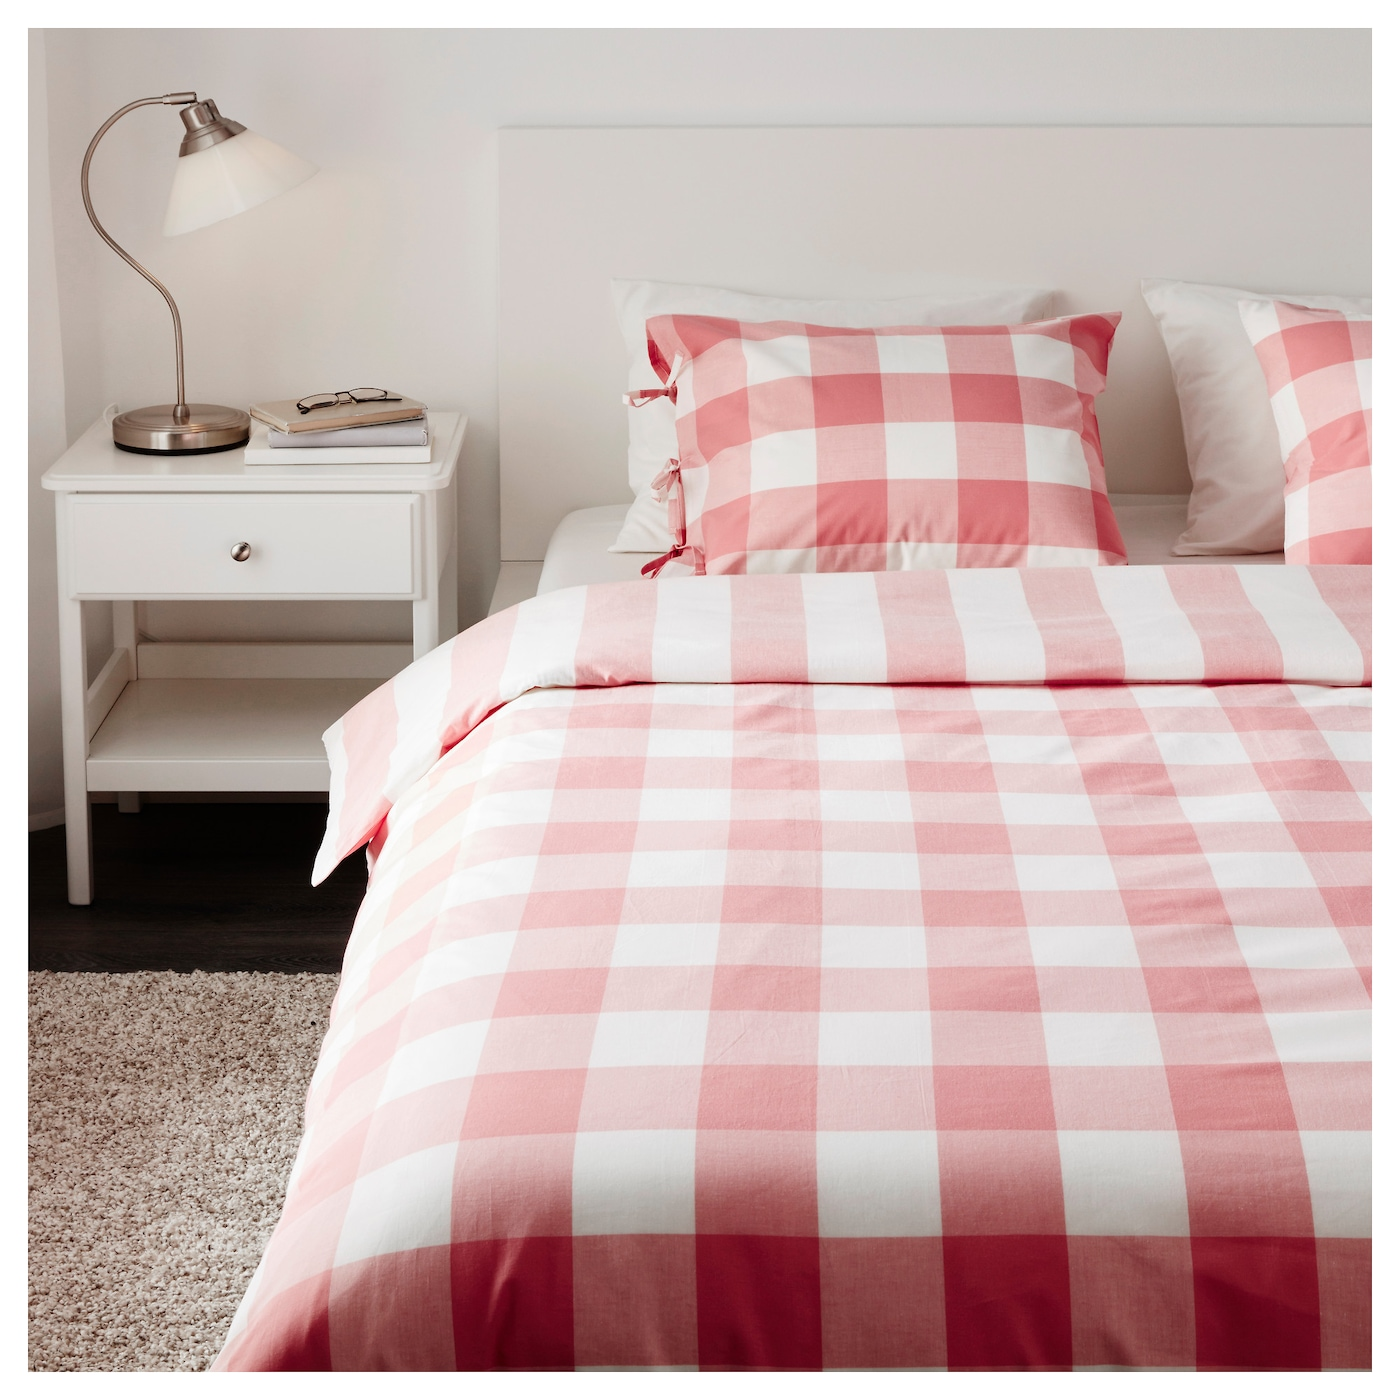 emmie ruta quilt cover and 4 pillowcases pink white 200x200 50x80 cm ikea. Black Bedroom Furniture Sets. Home Design Ideas